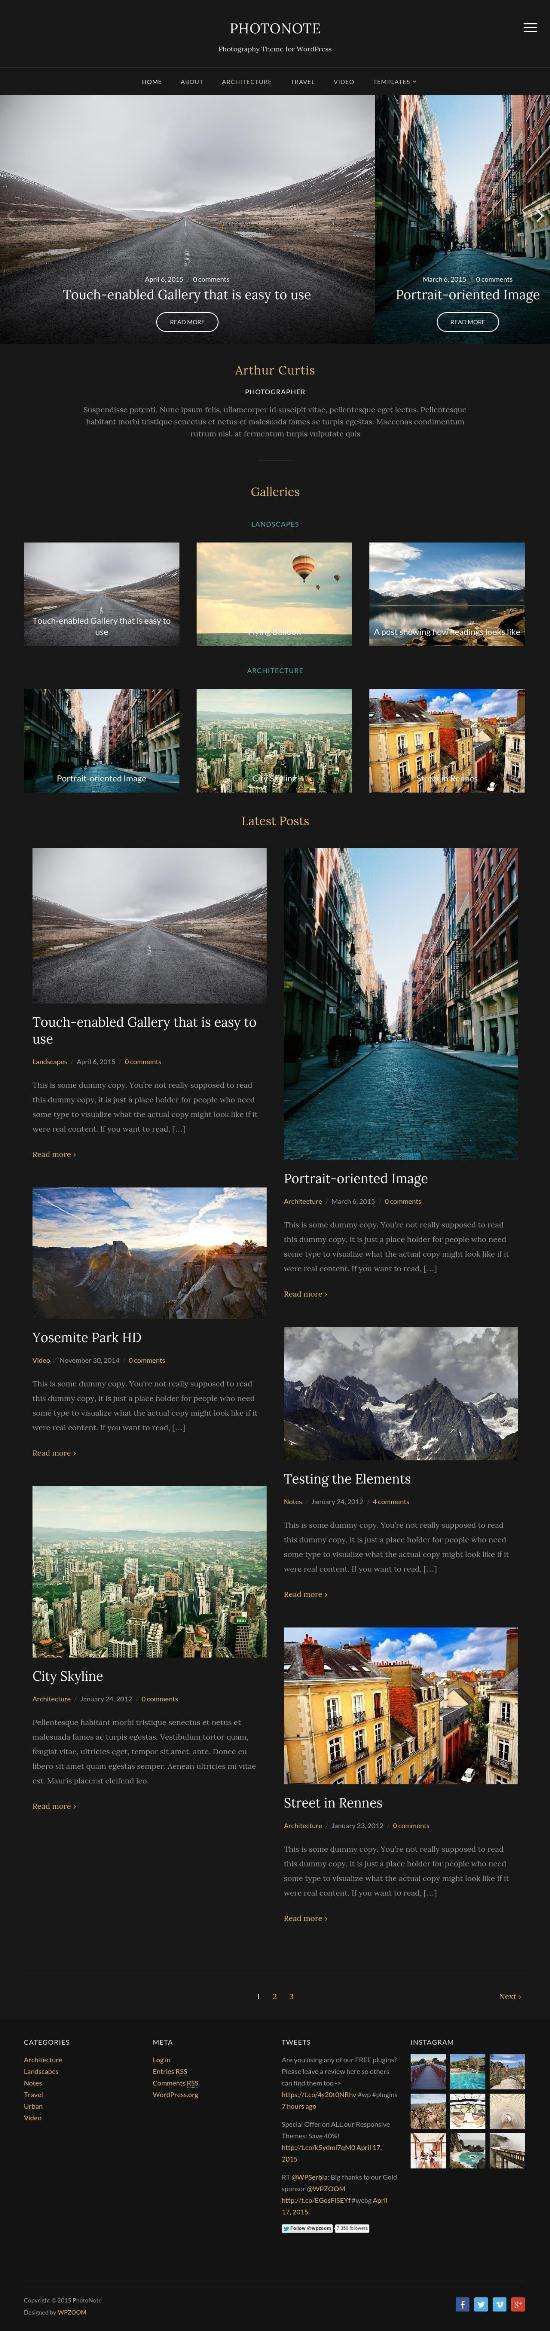 photonote-2-wpzoom-photography-theme-01